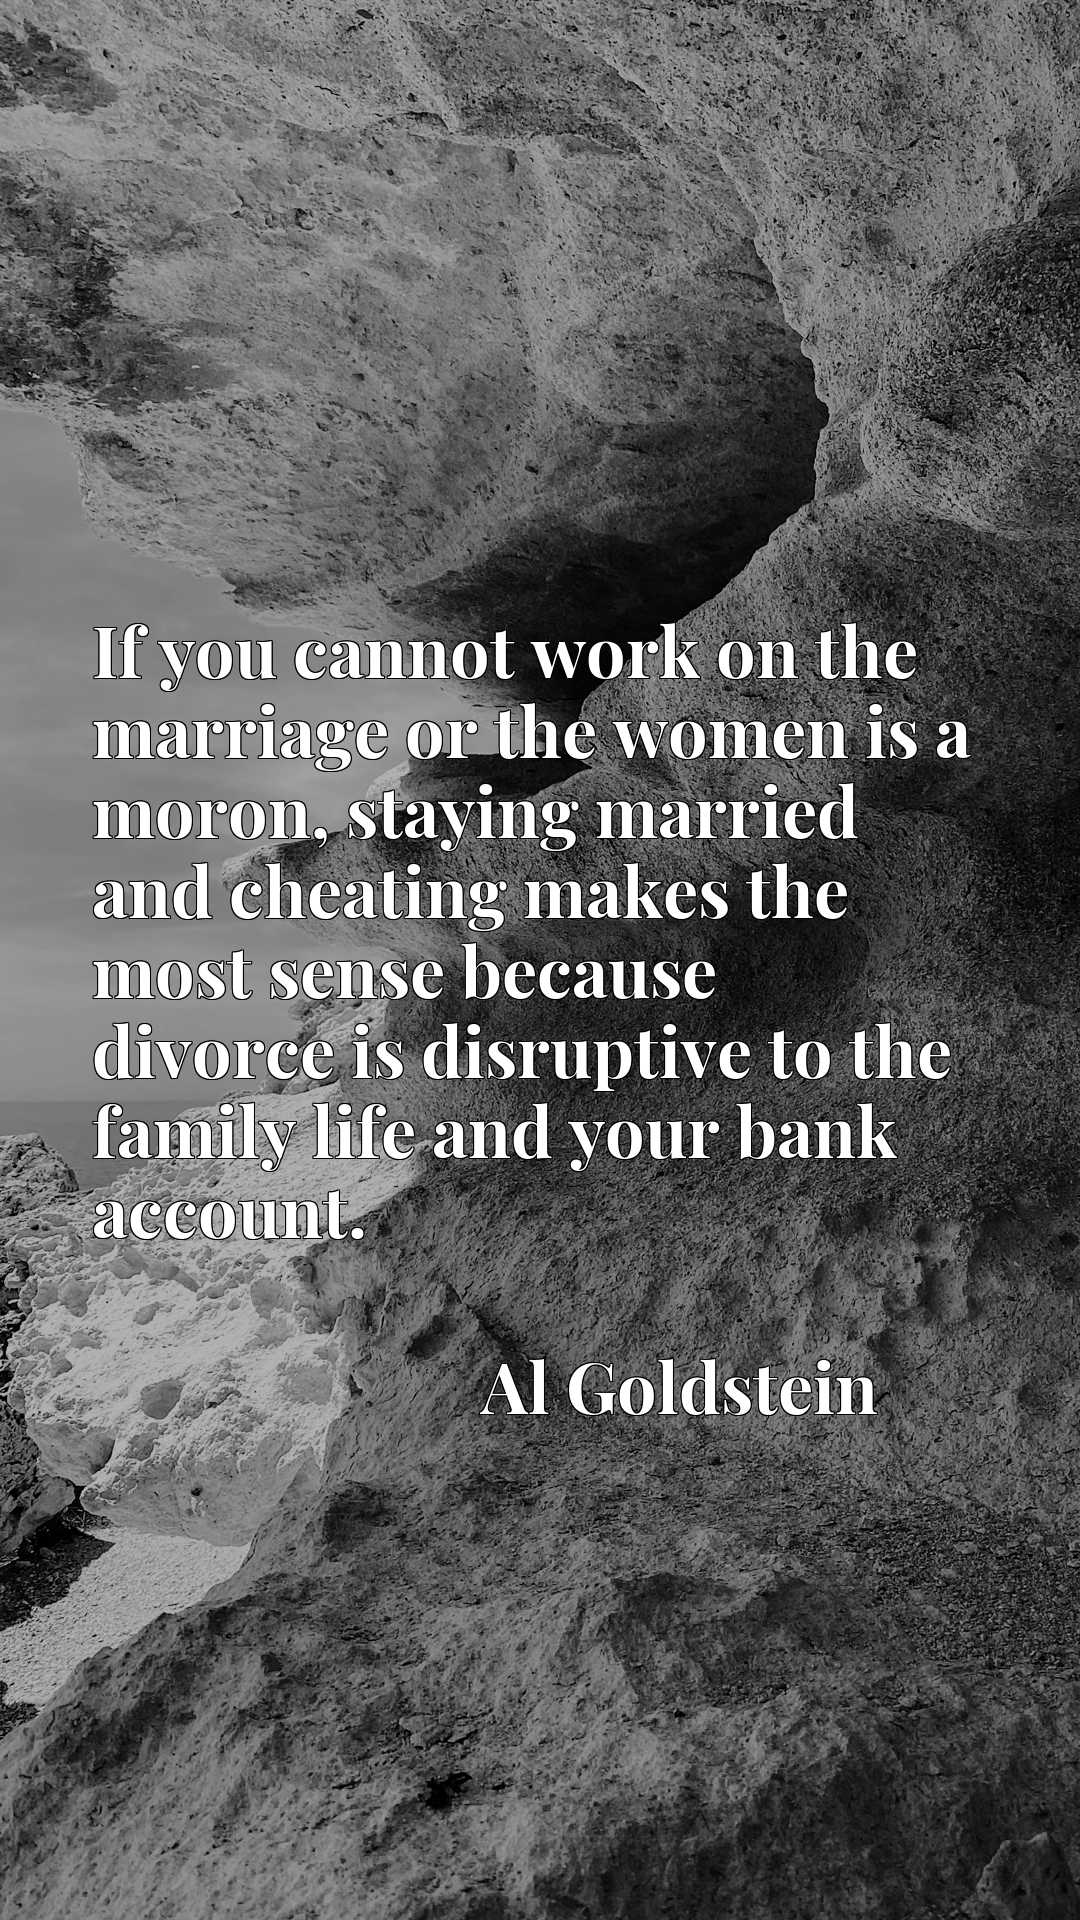 If you cannot work on the marriage or the women is a moron, staying married and cheating makes the most sense because divorce is disruptive to the family life and your bank account.